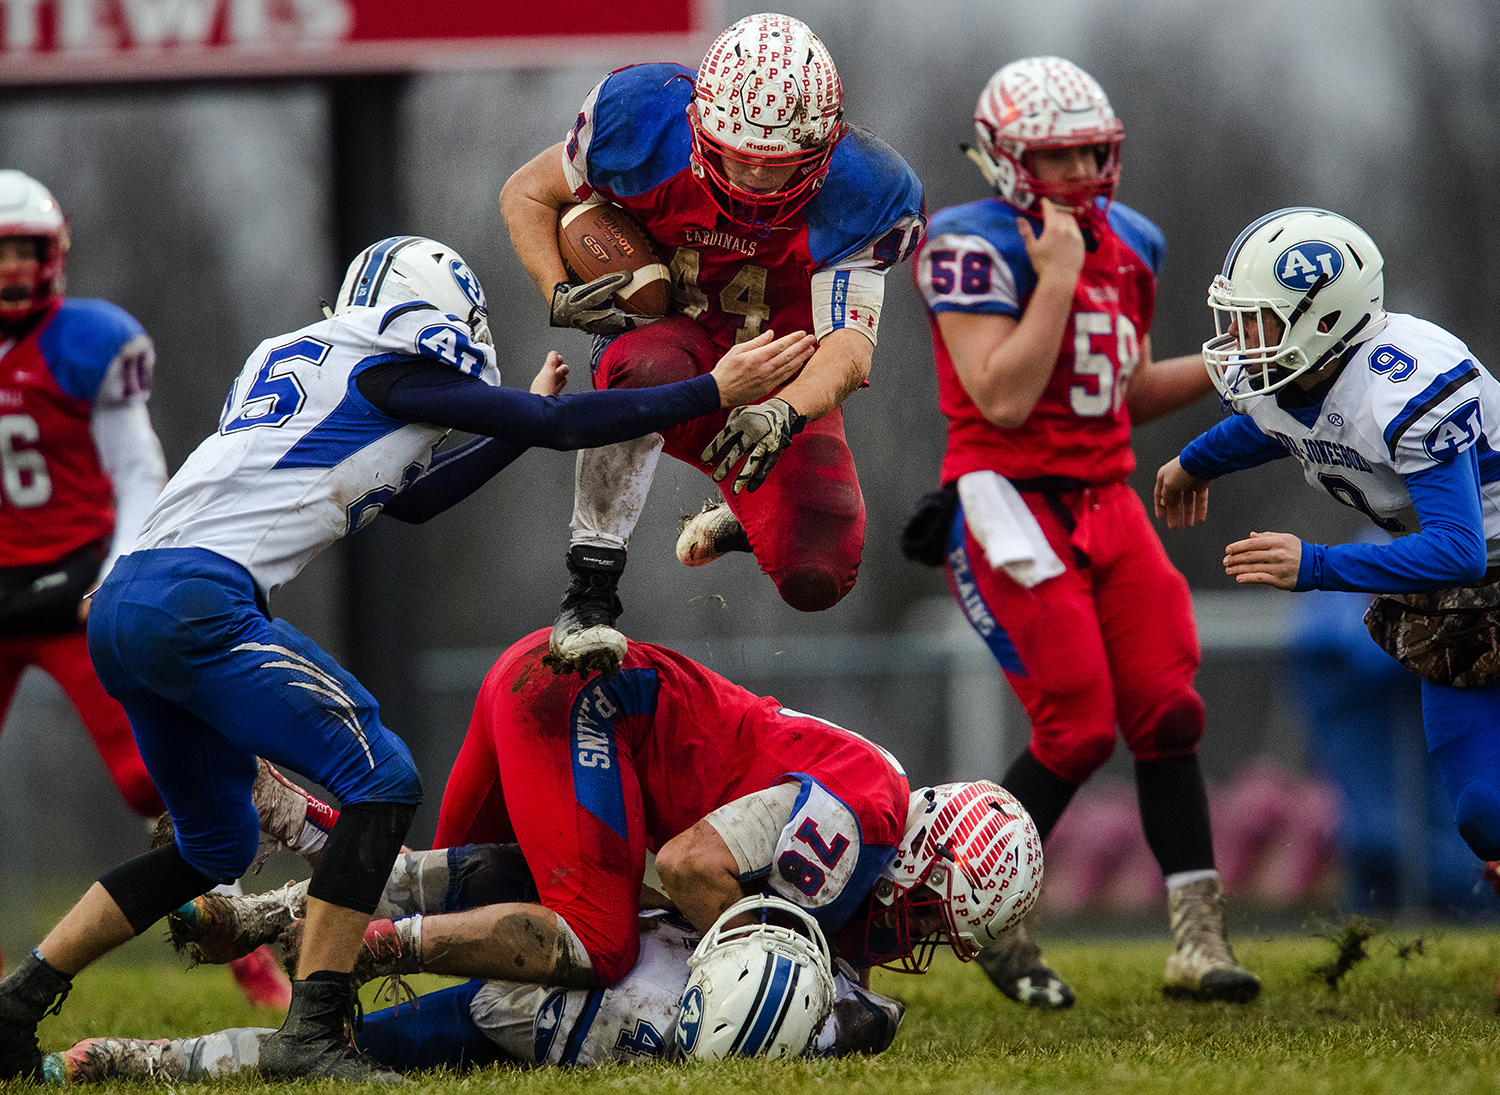 Pleasant Plains' Nik Samson leaps over a teammate and a Anna-Jonesboro defender as he picks up a few of his 209 yards rushing during the IHSA Class 3A football semifinal game at Pleasant Plains High School Saturday, Nov. 18, 2017. [Ted Schurter/The State Journal-Register]